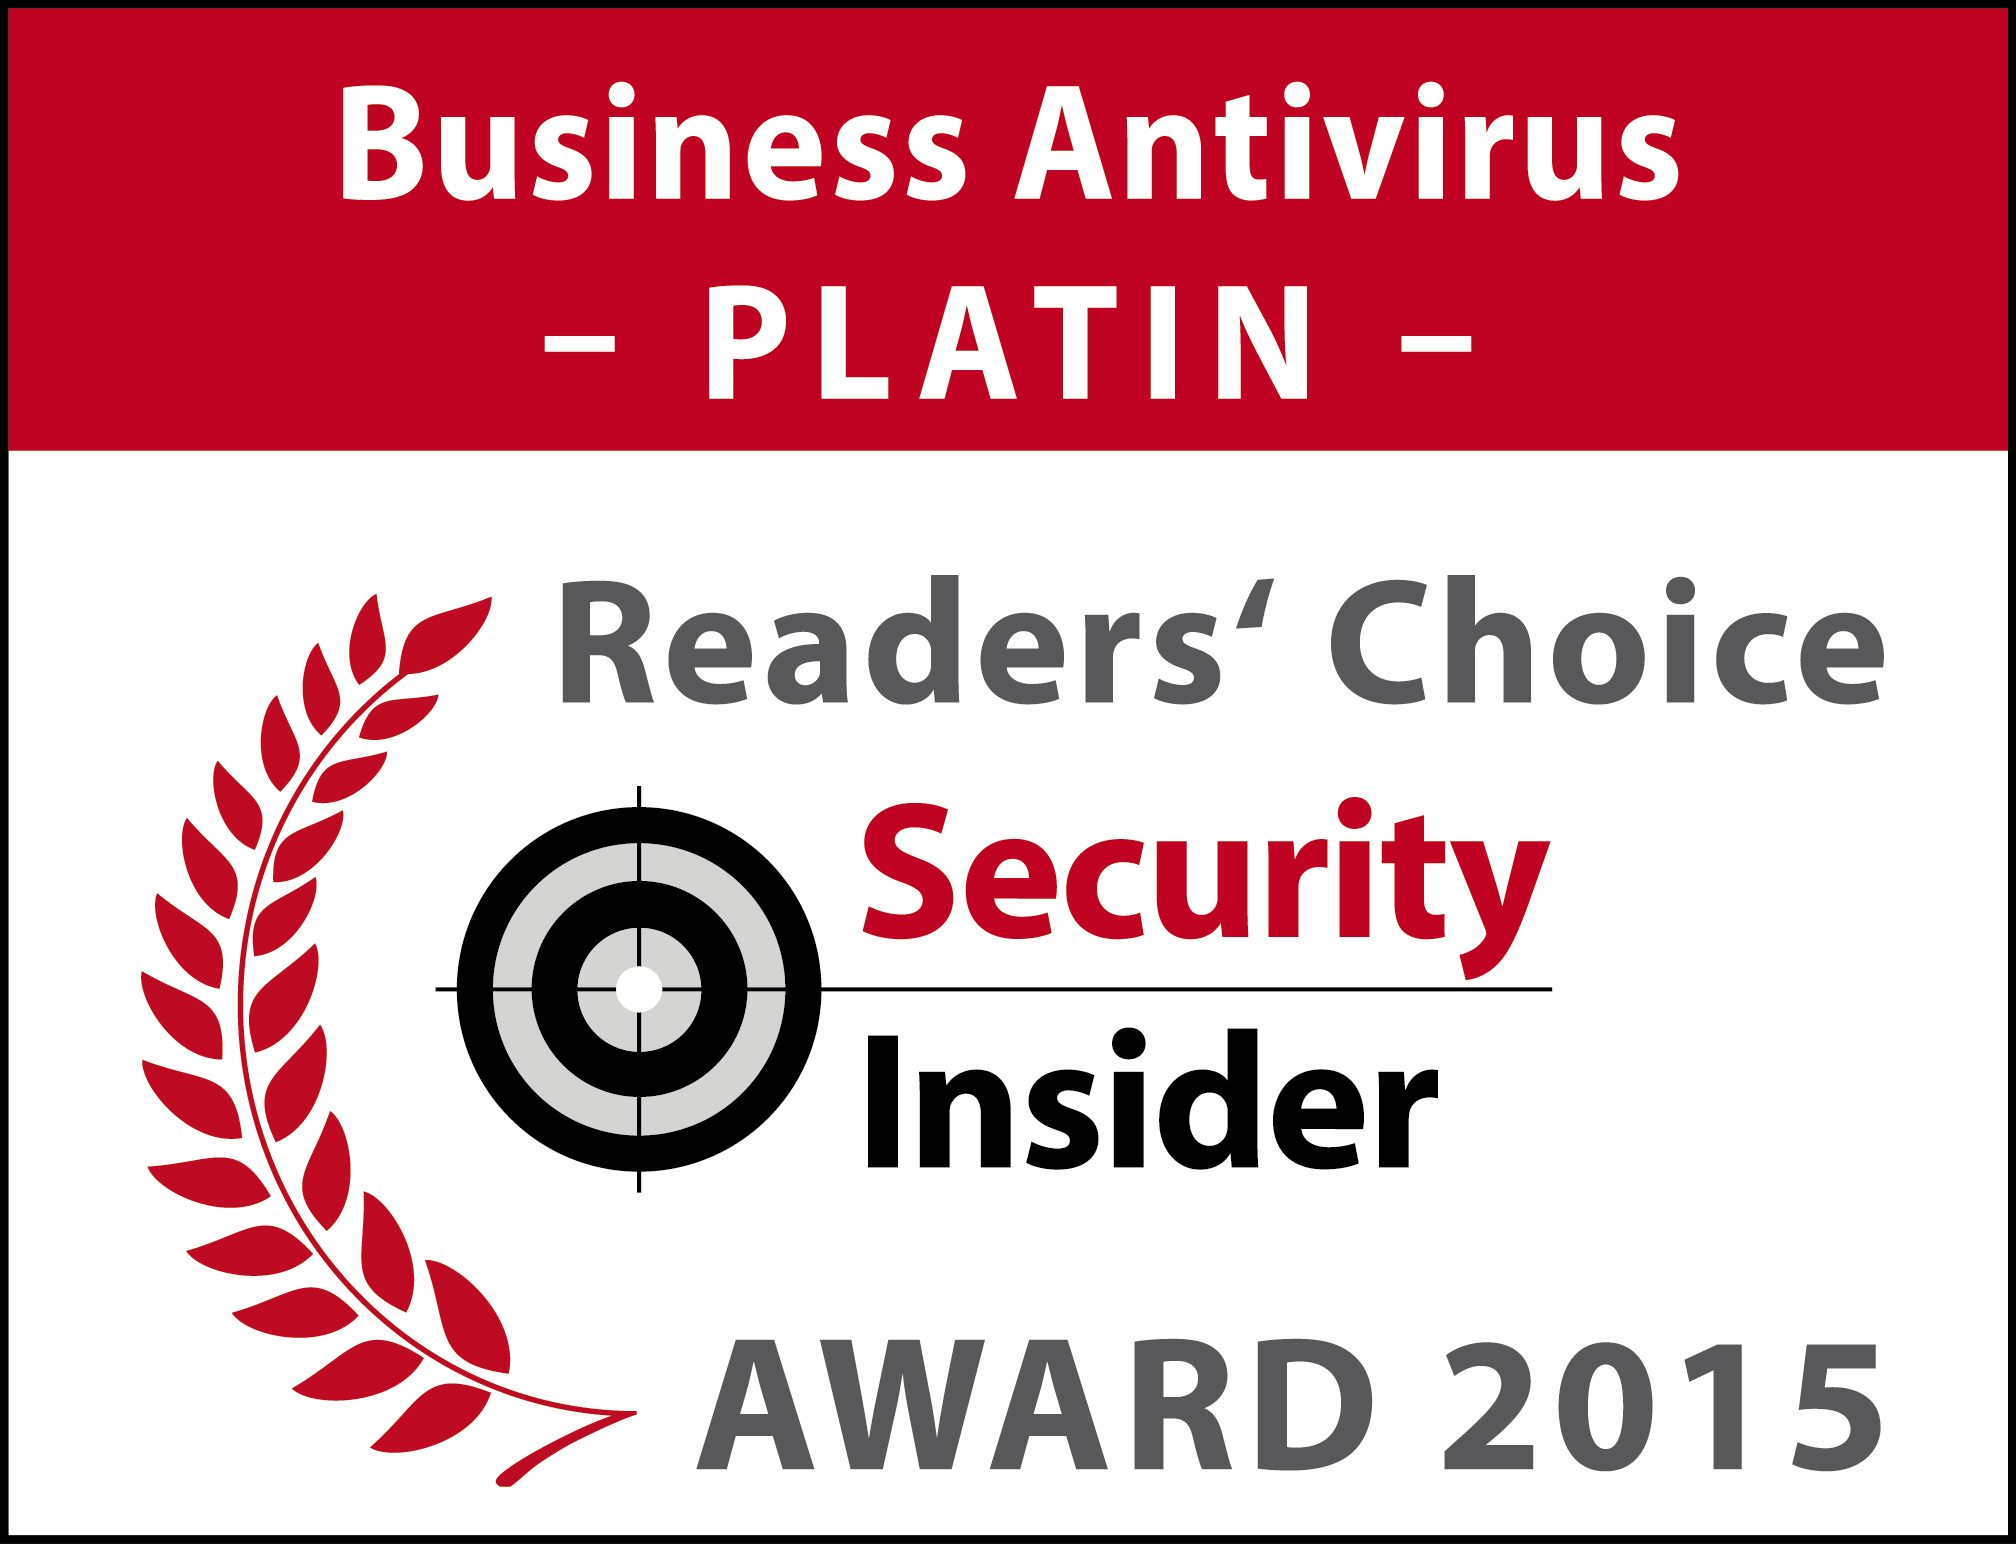 SEC Platin Business Antivirus